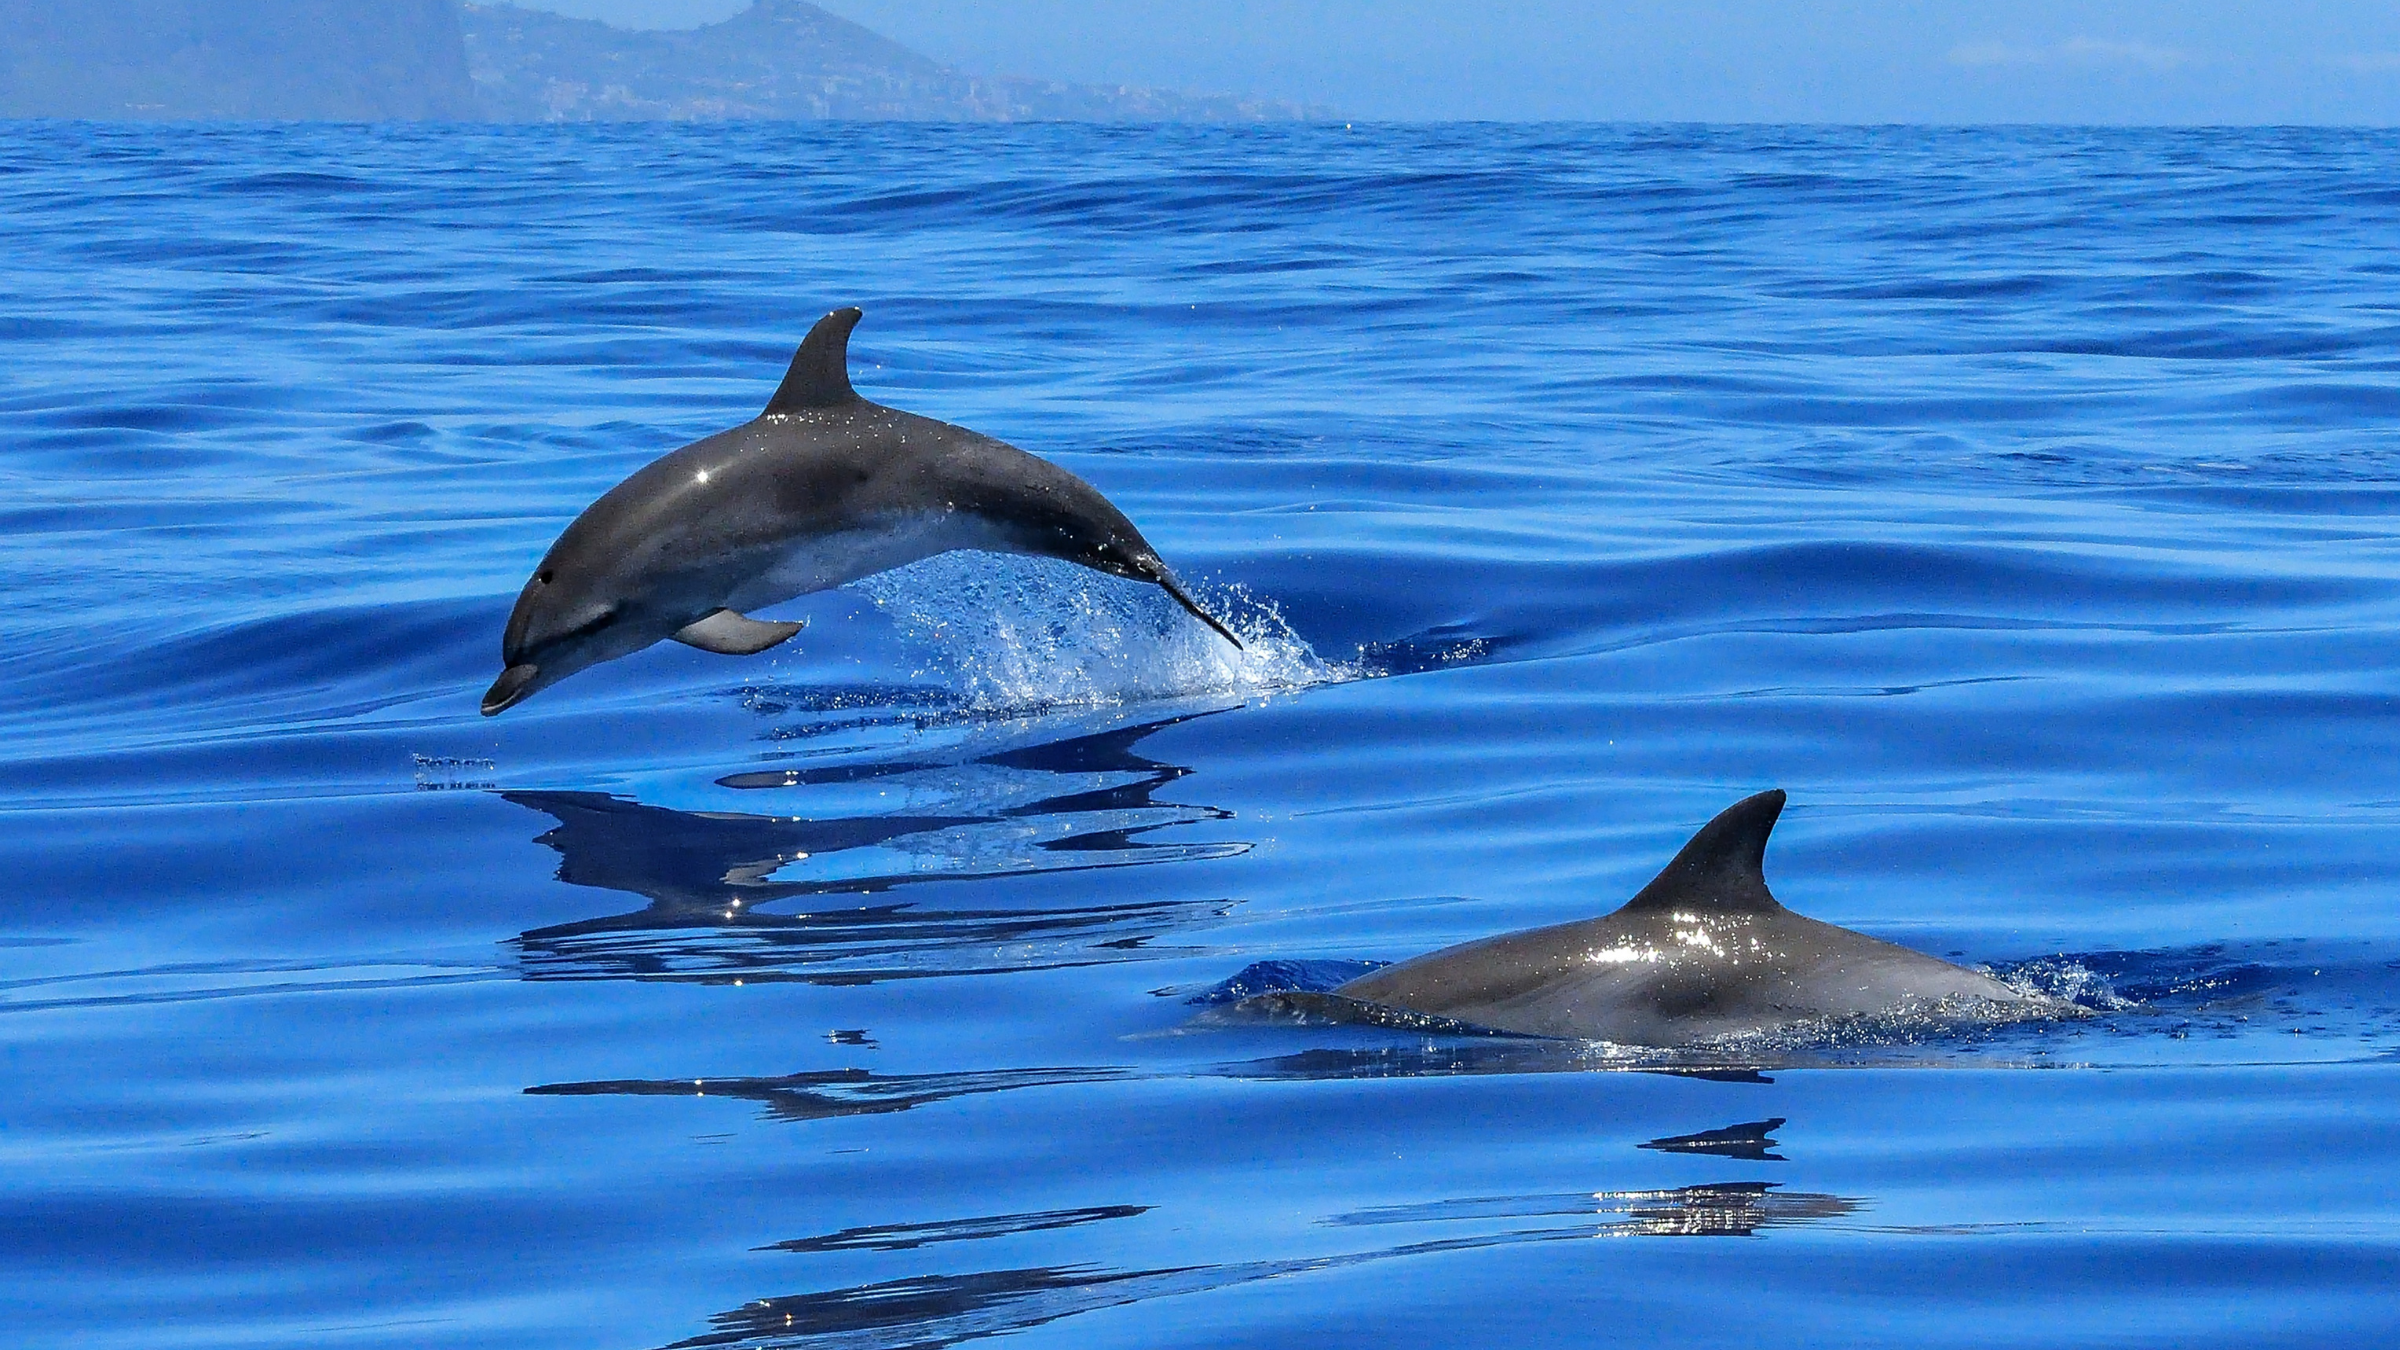 Plastic Free July - Dolphins